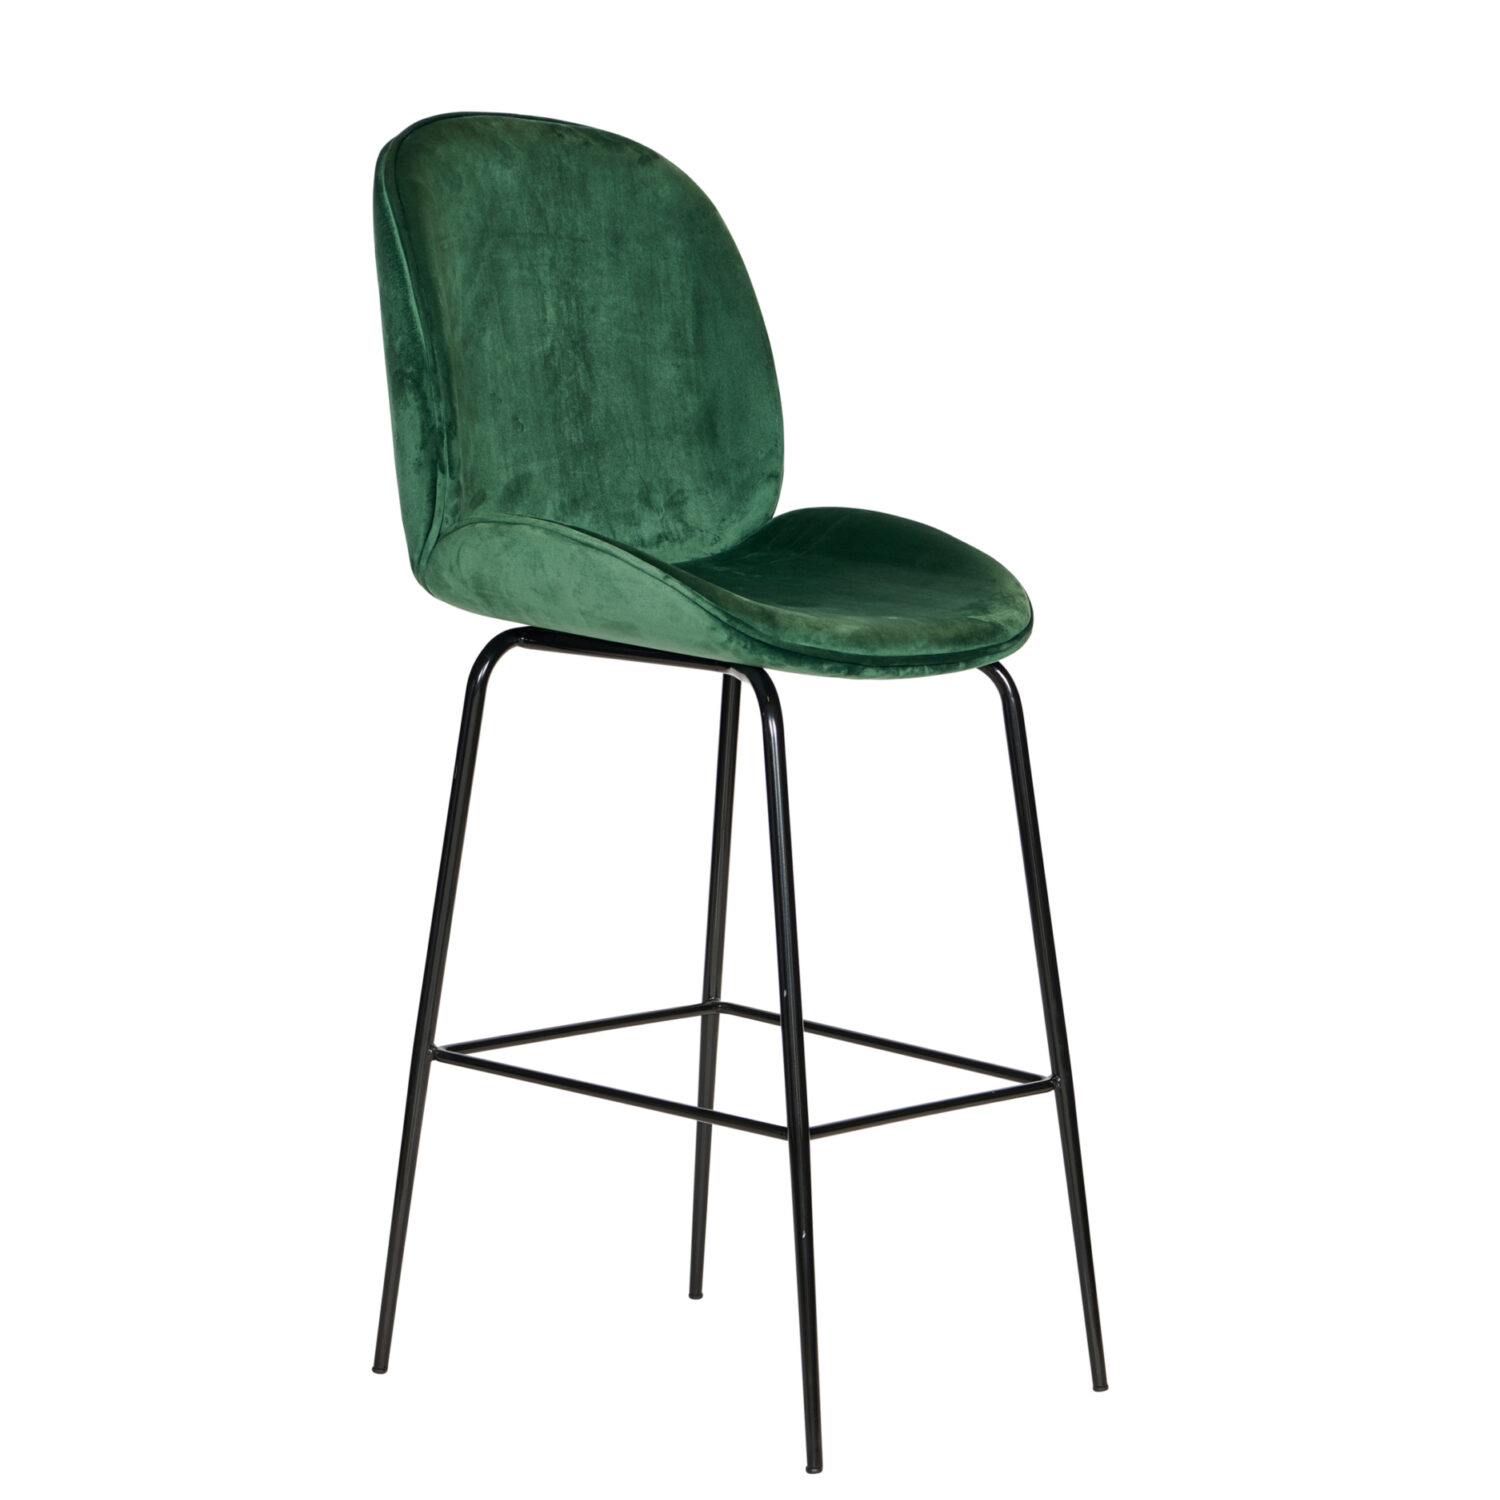 Harlow Stool - Green Velvet / Black Leg - Event Artillery